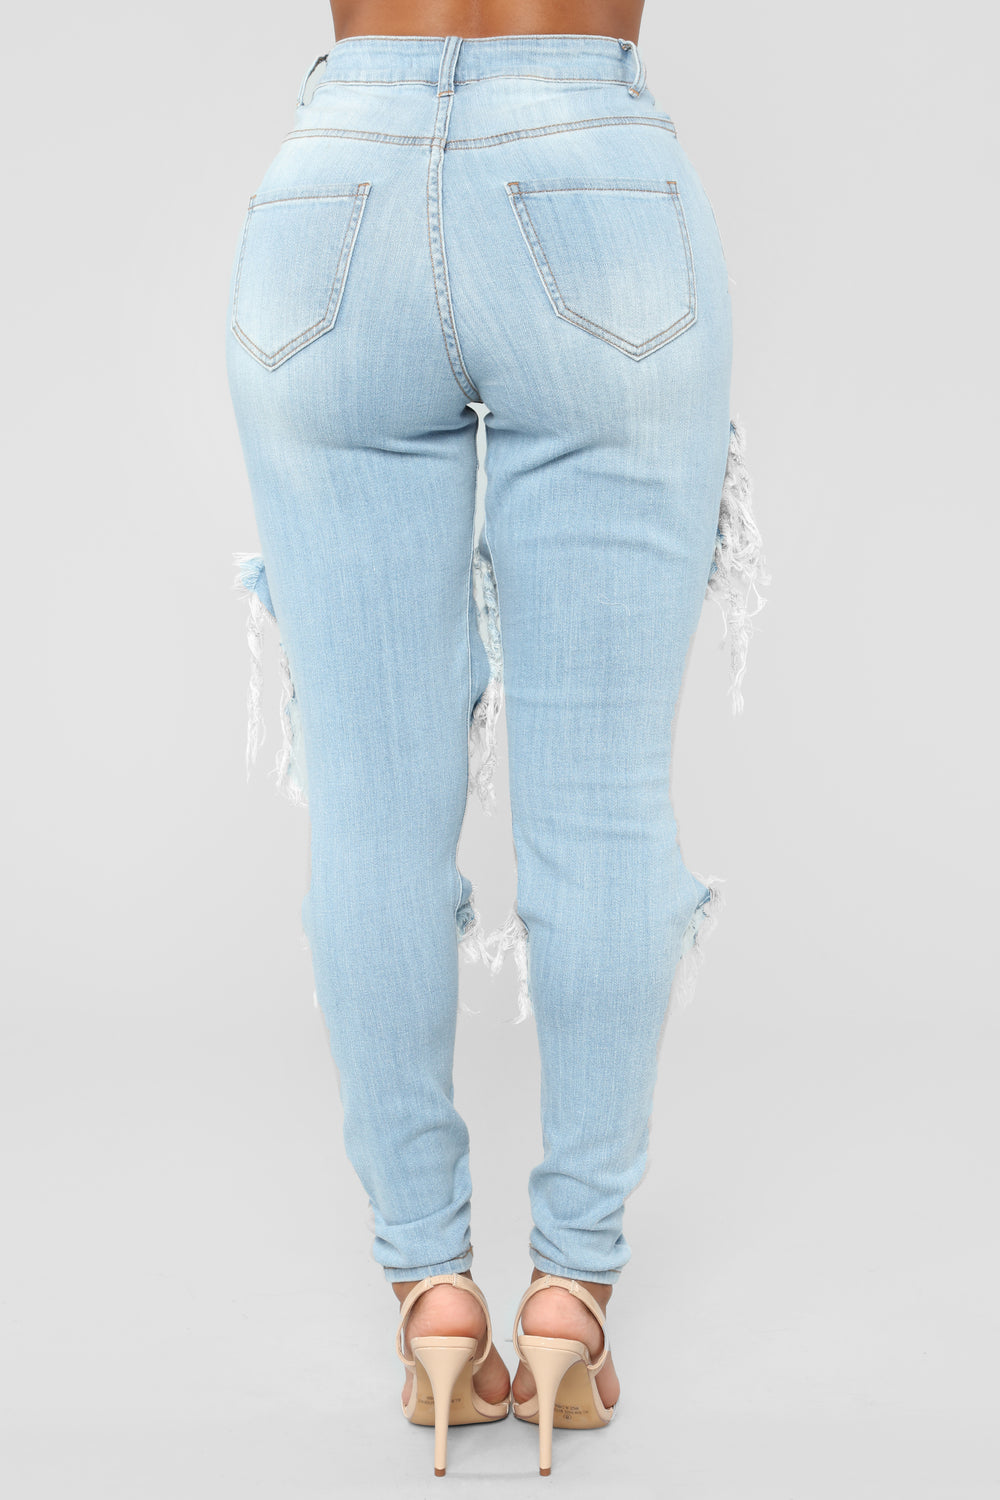 Syracuse Distressed Jeans - Light Blue Wash